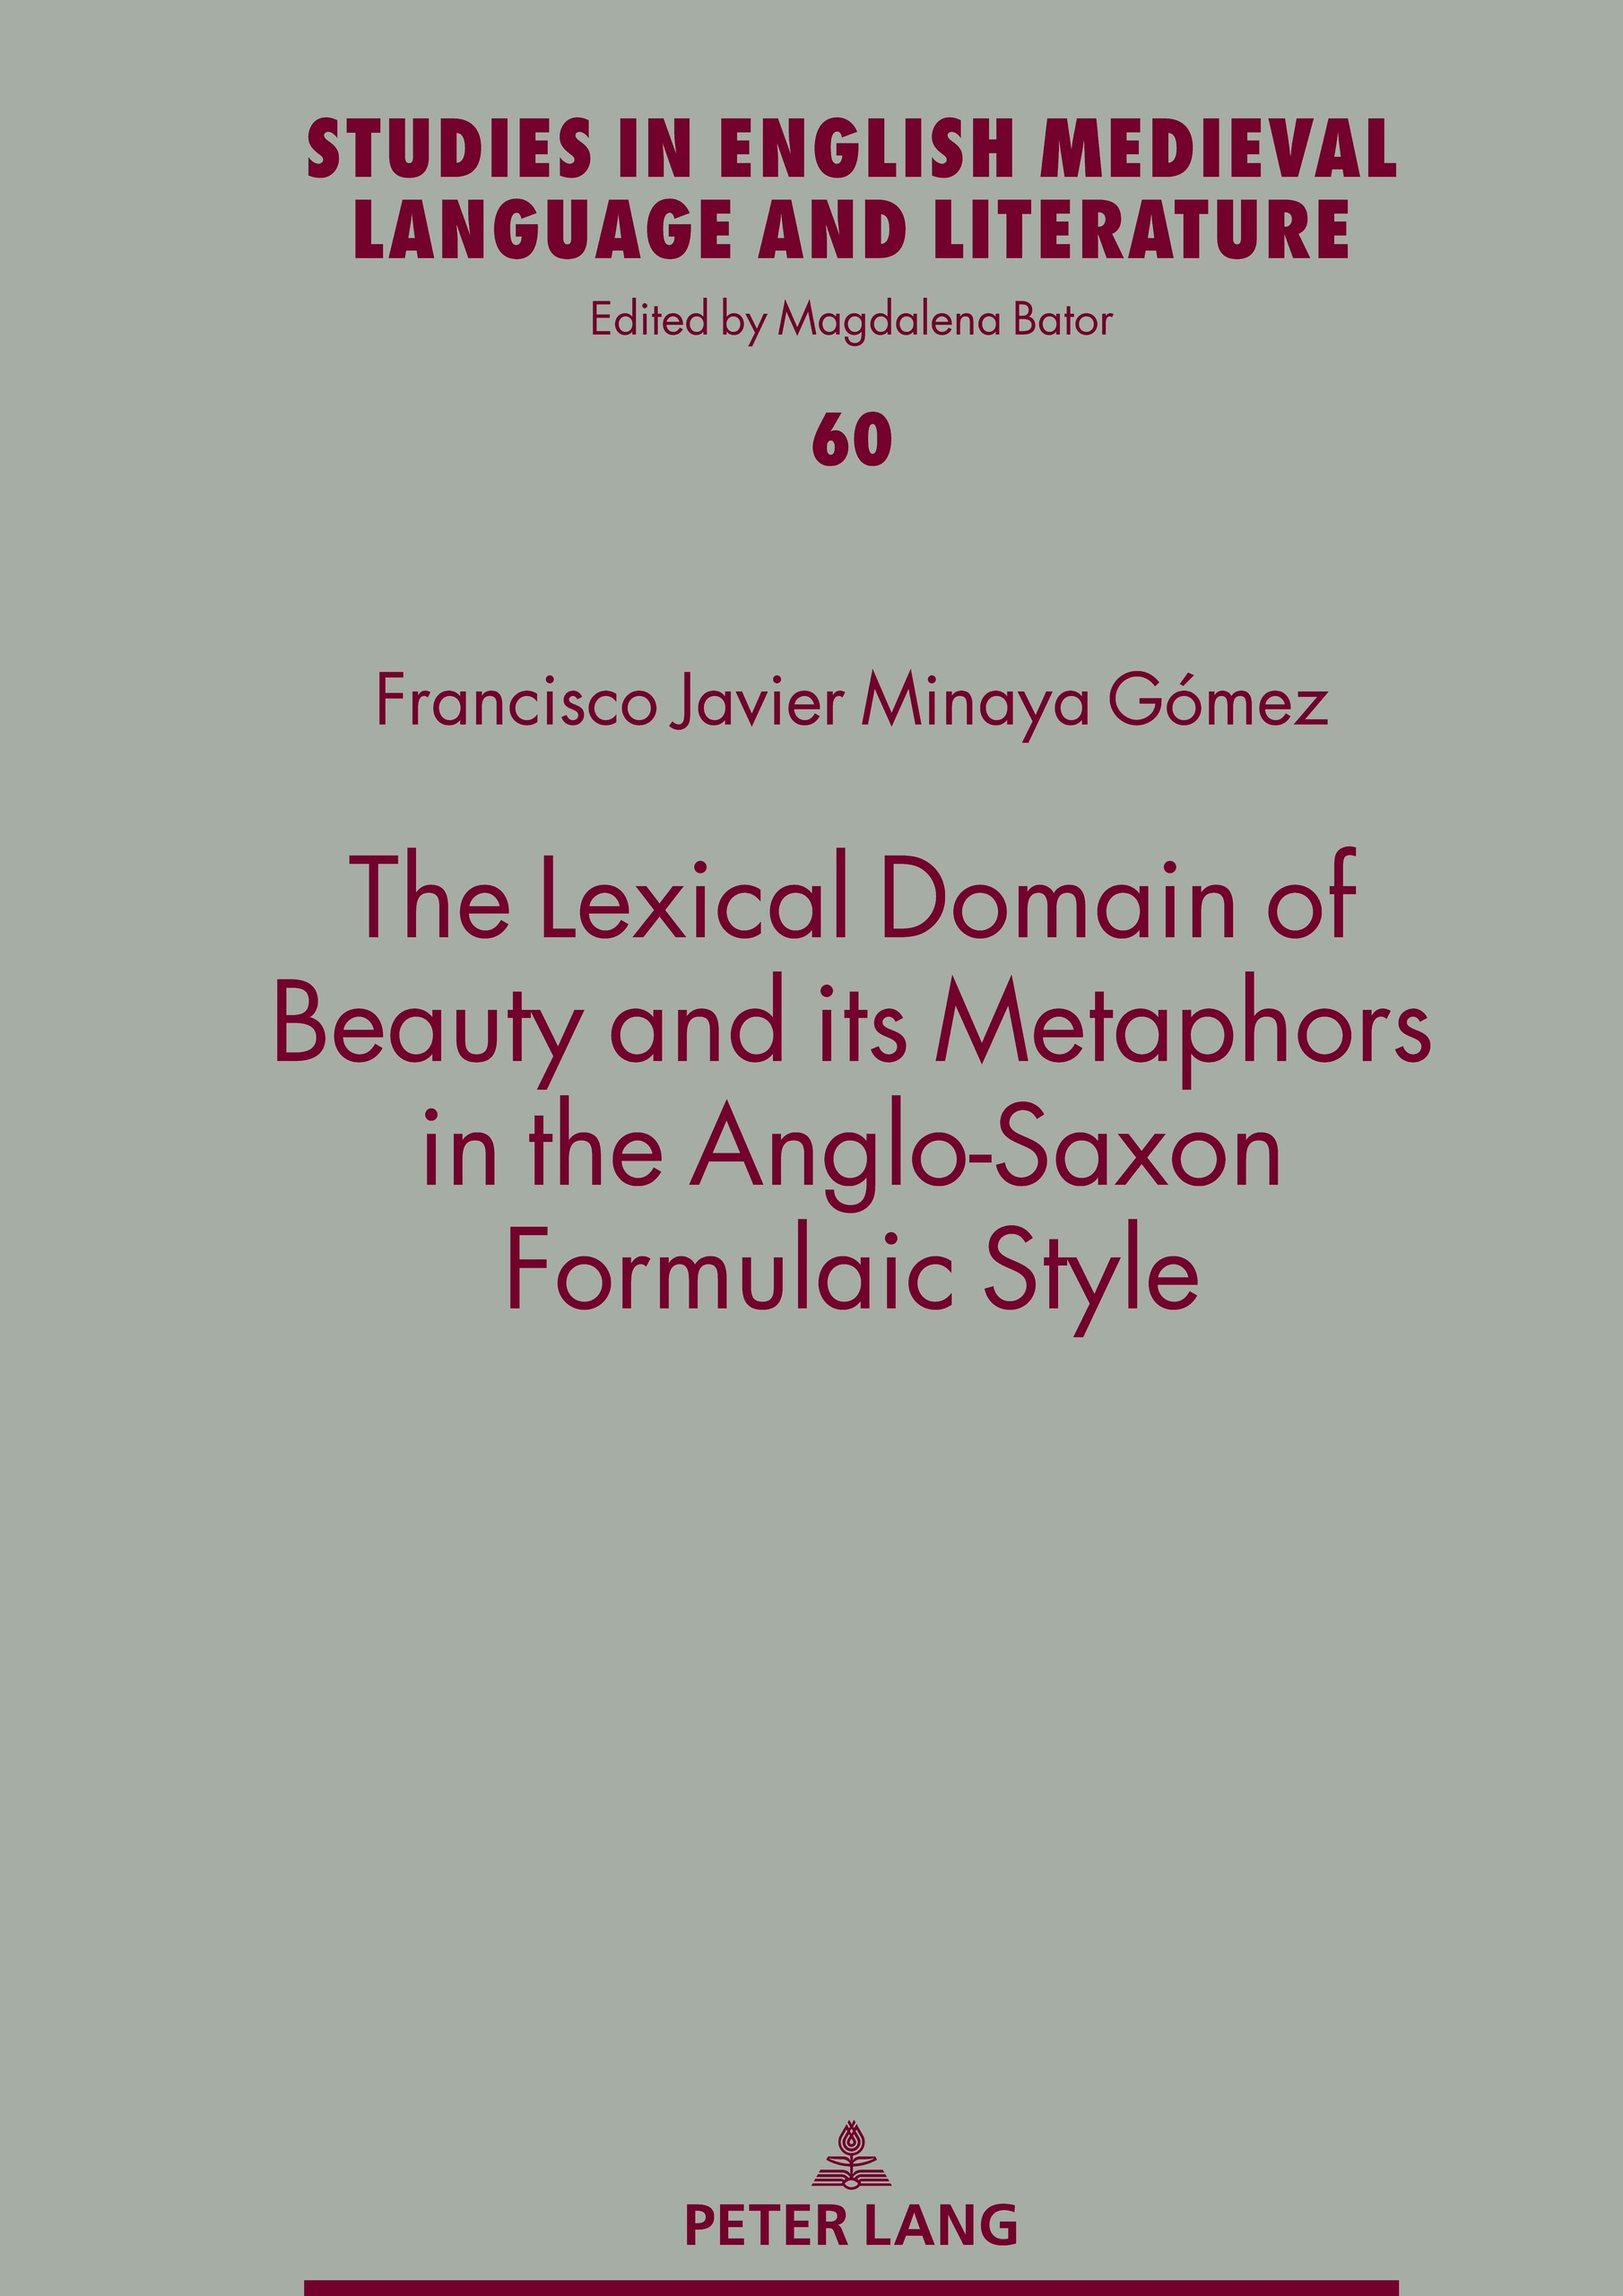 Title: The Lexical Domain of Beauty and its Metaphors in the Anglo-Saxon Formulaic Style